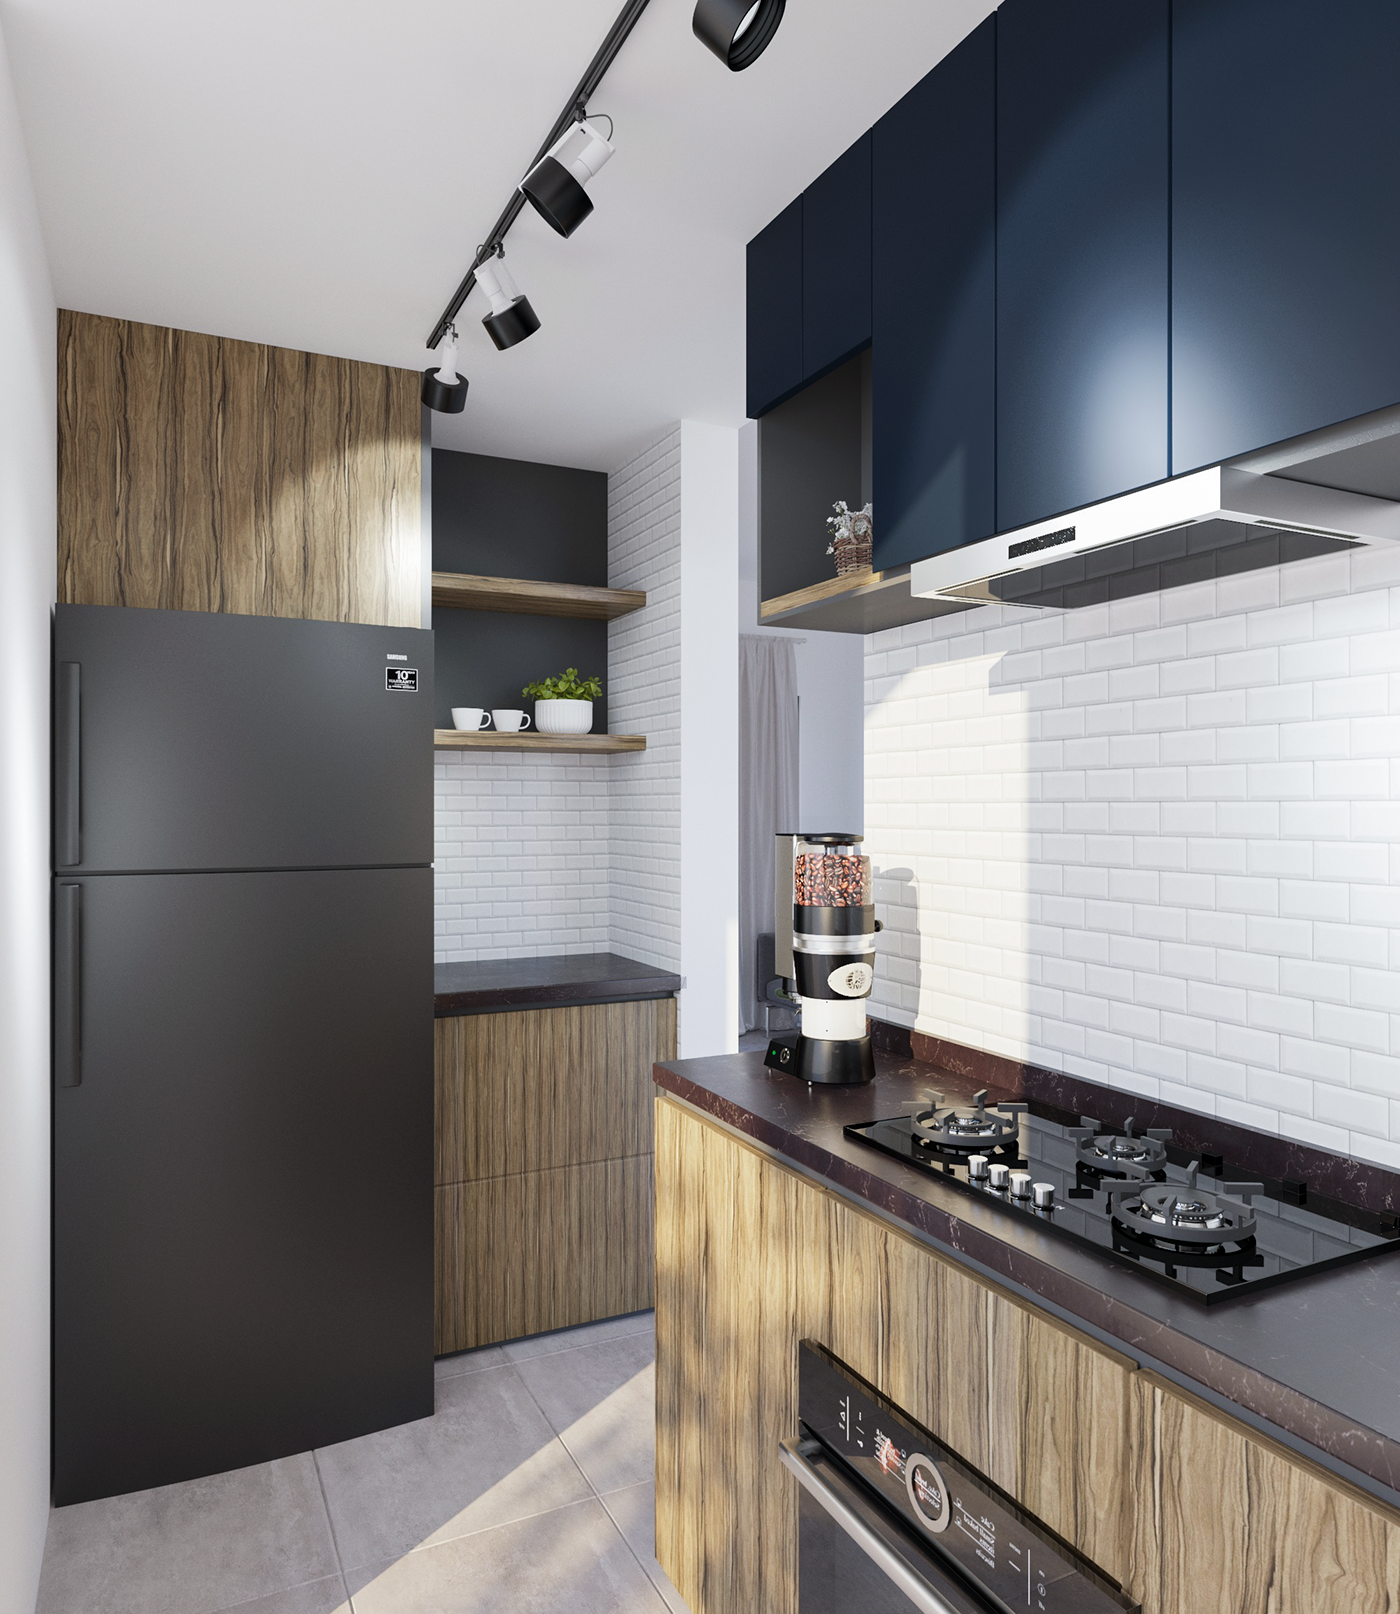 Small Kitchen in Malaysia Industrial Style Designed